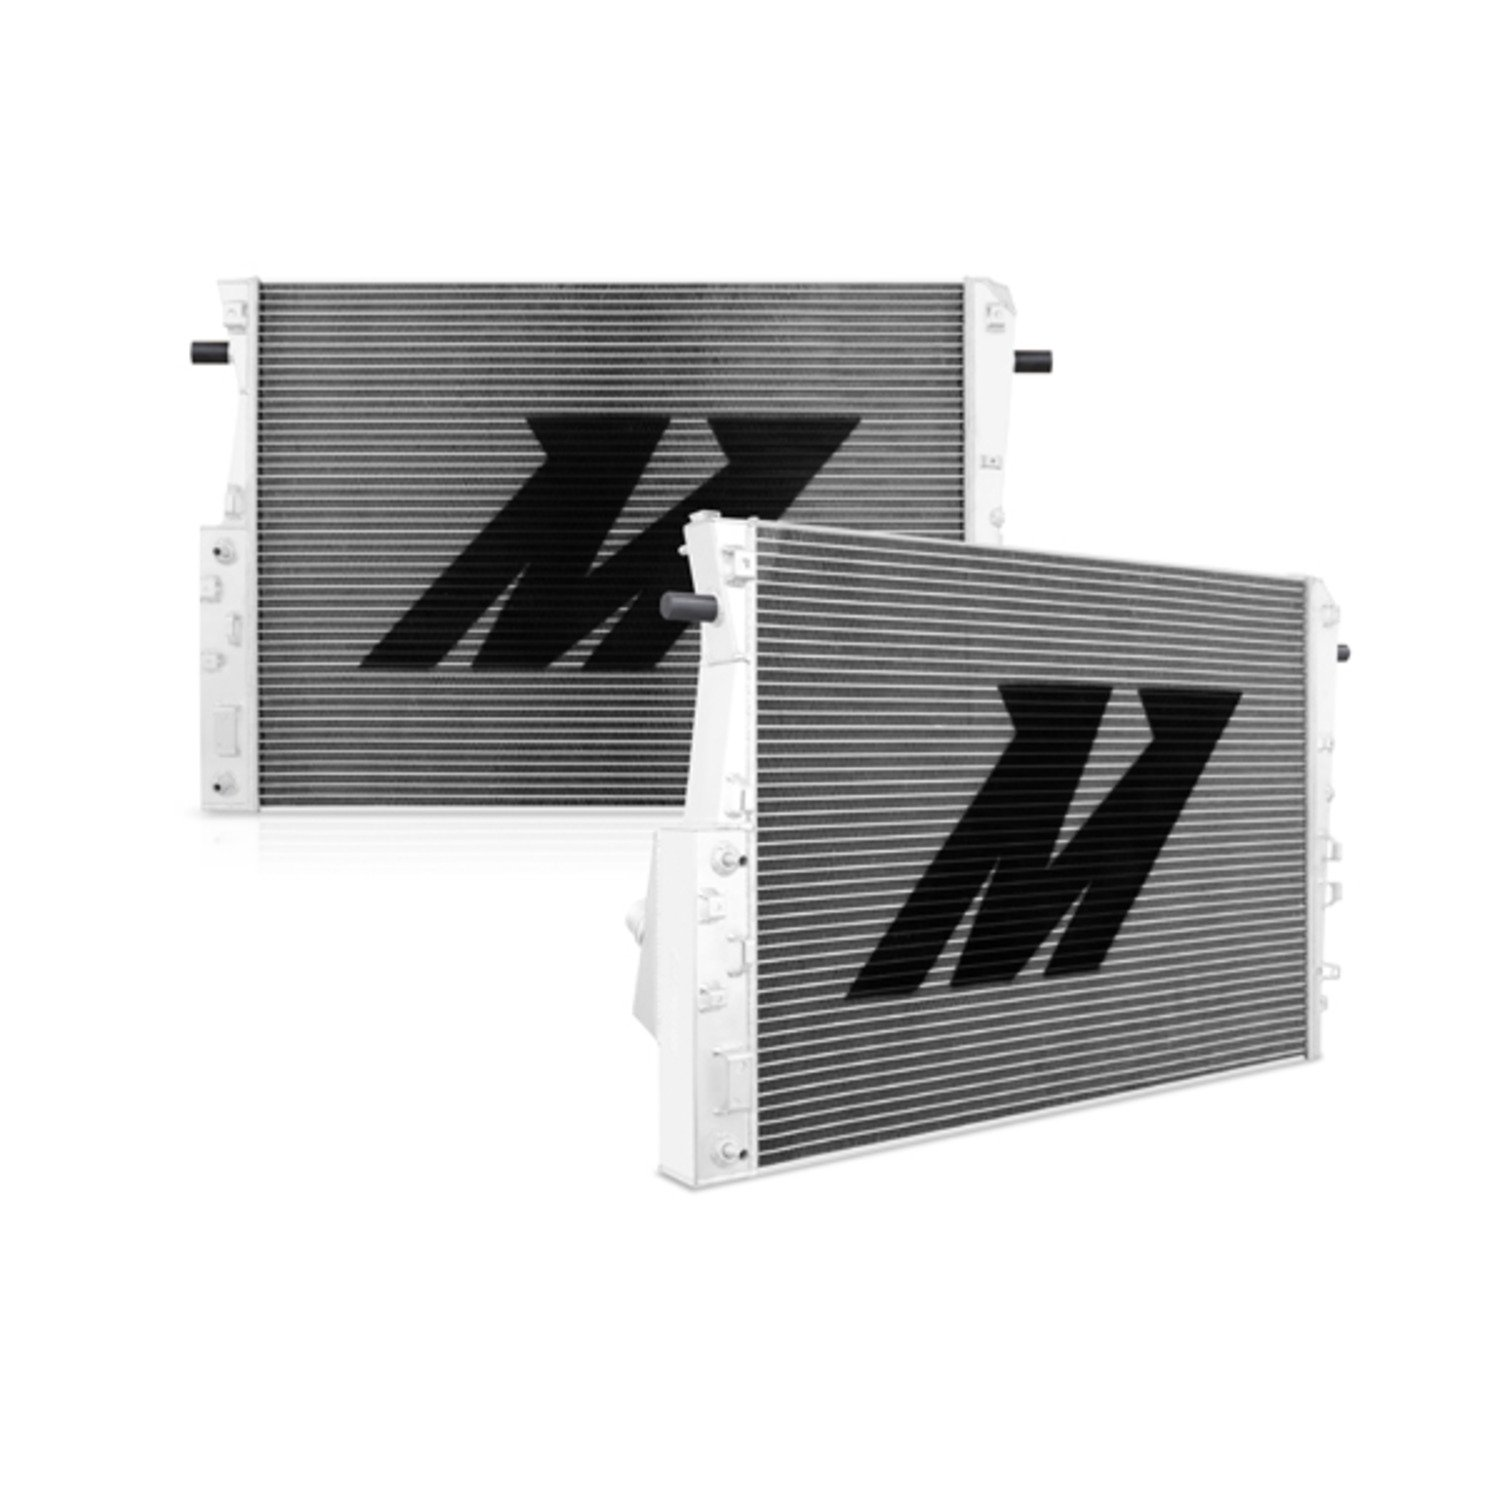 Amazon.com: Mishimoto MMRAD-F2D-08 Aluminum Radiator for Ford 6.4L Power Stroke: Automotive